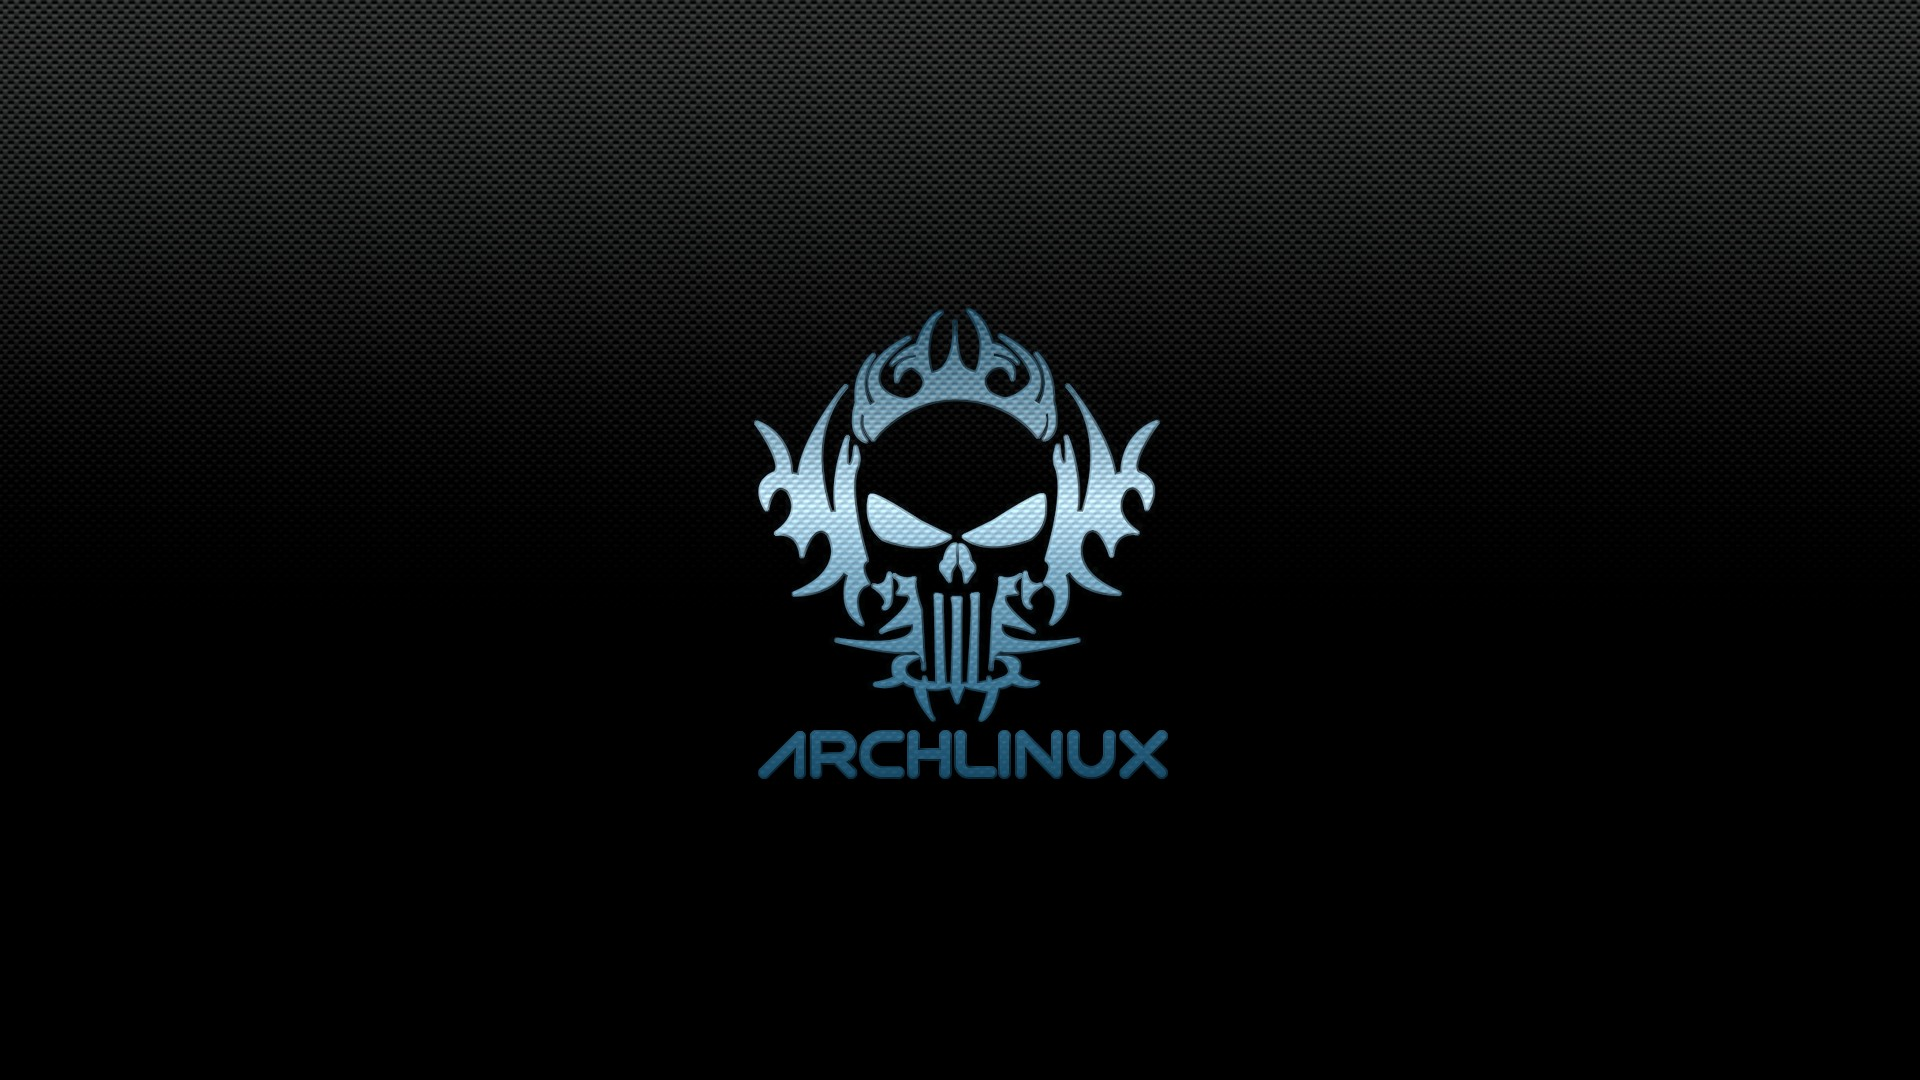 46+] Arch Linux Wallpaper HD on WallpaperSafari